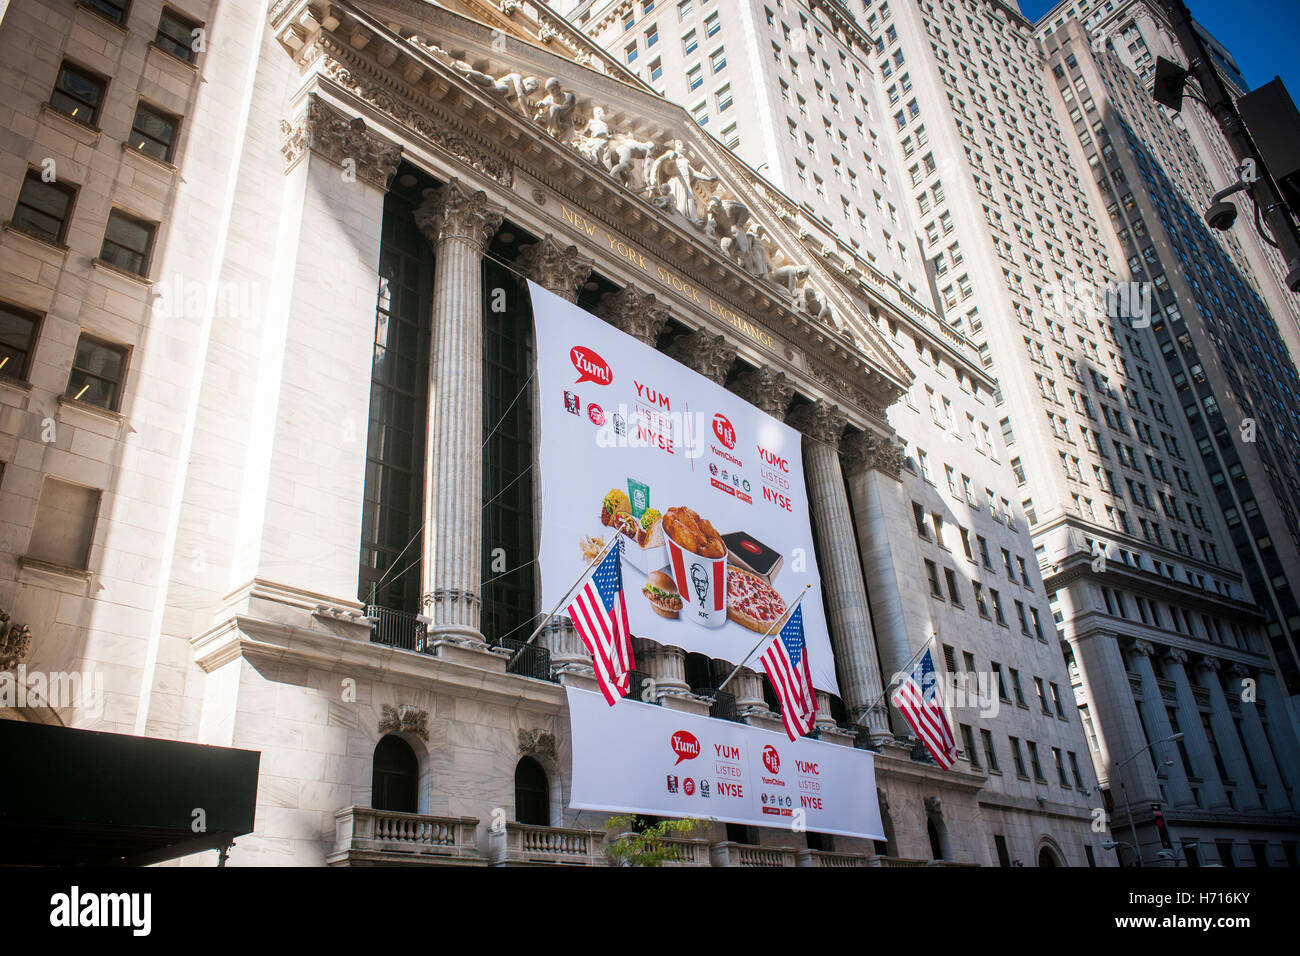 The New York Stock Exchange is decorated for the first day of trading of Yum China Holdings after its separation - Stock Image